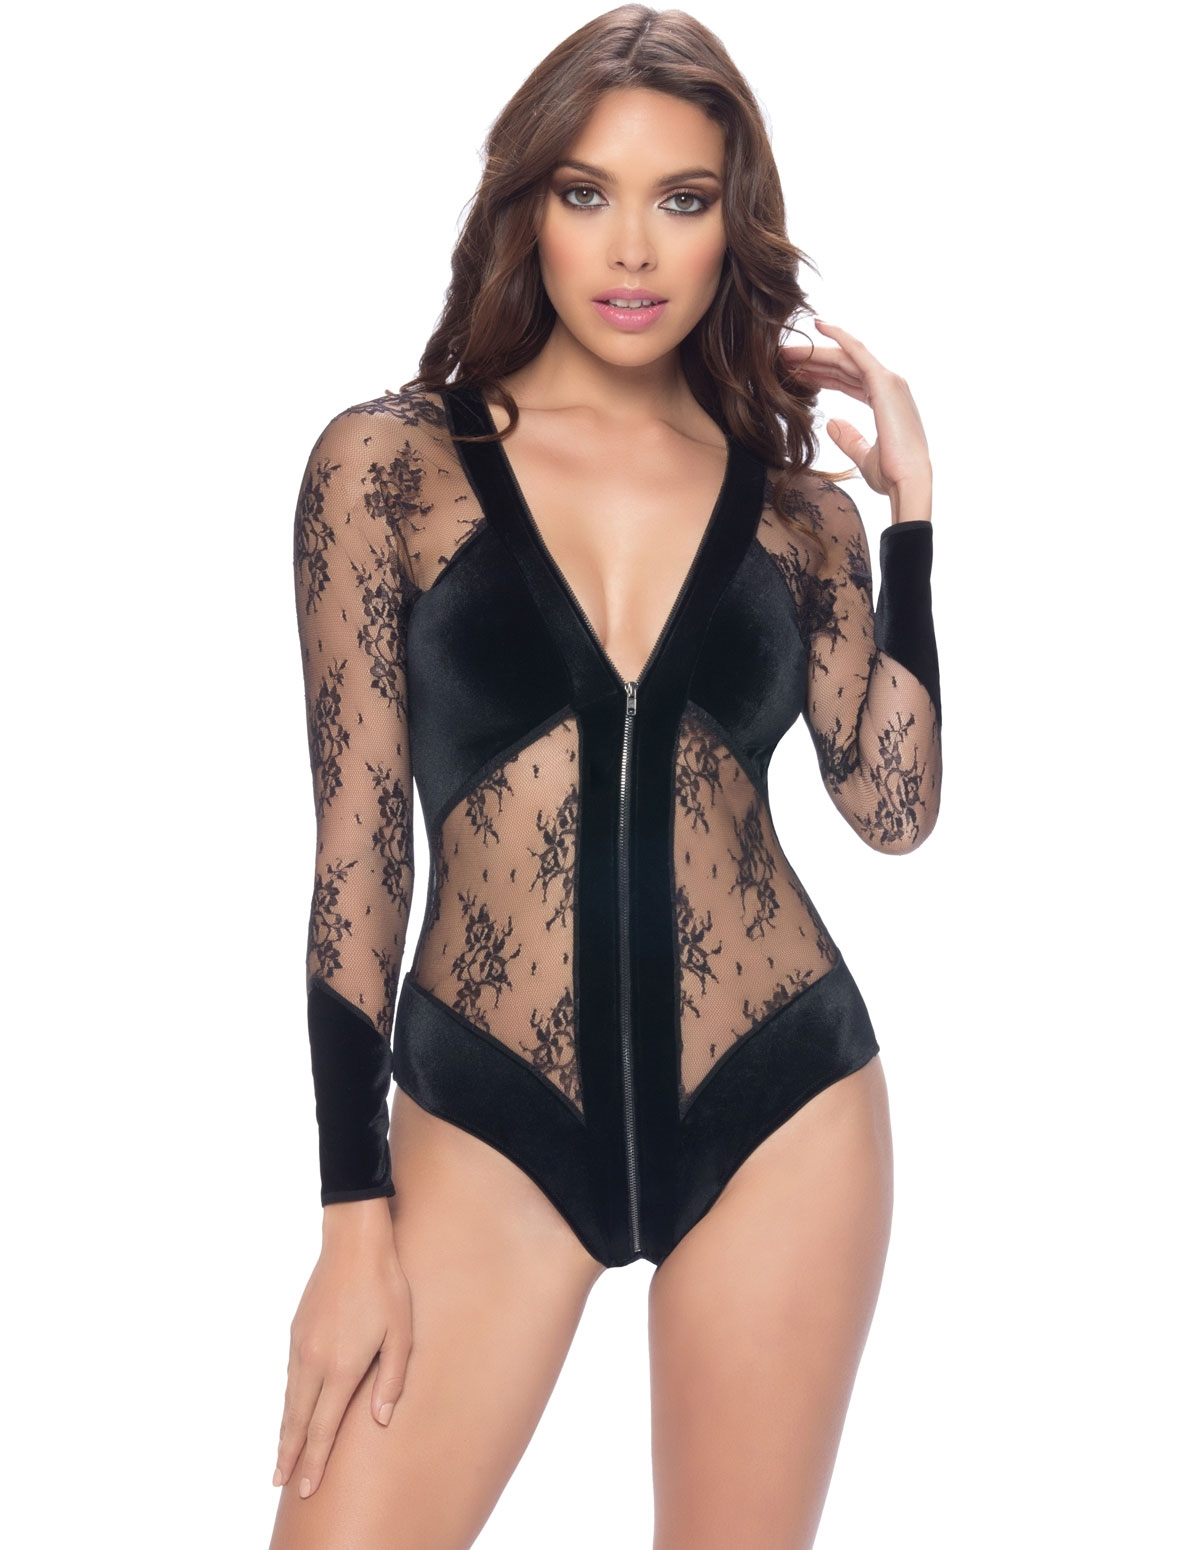 A Touch Of Velvet Lace Zip Teddy